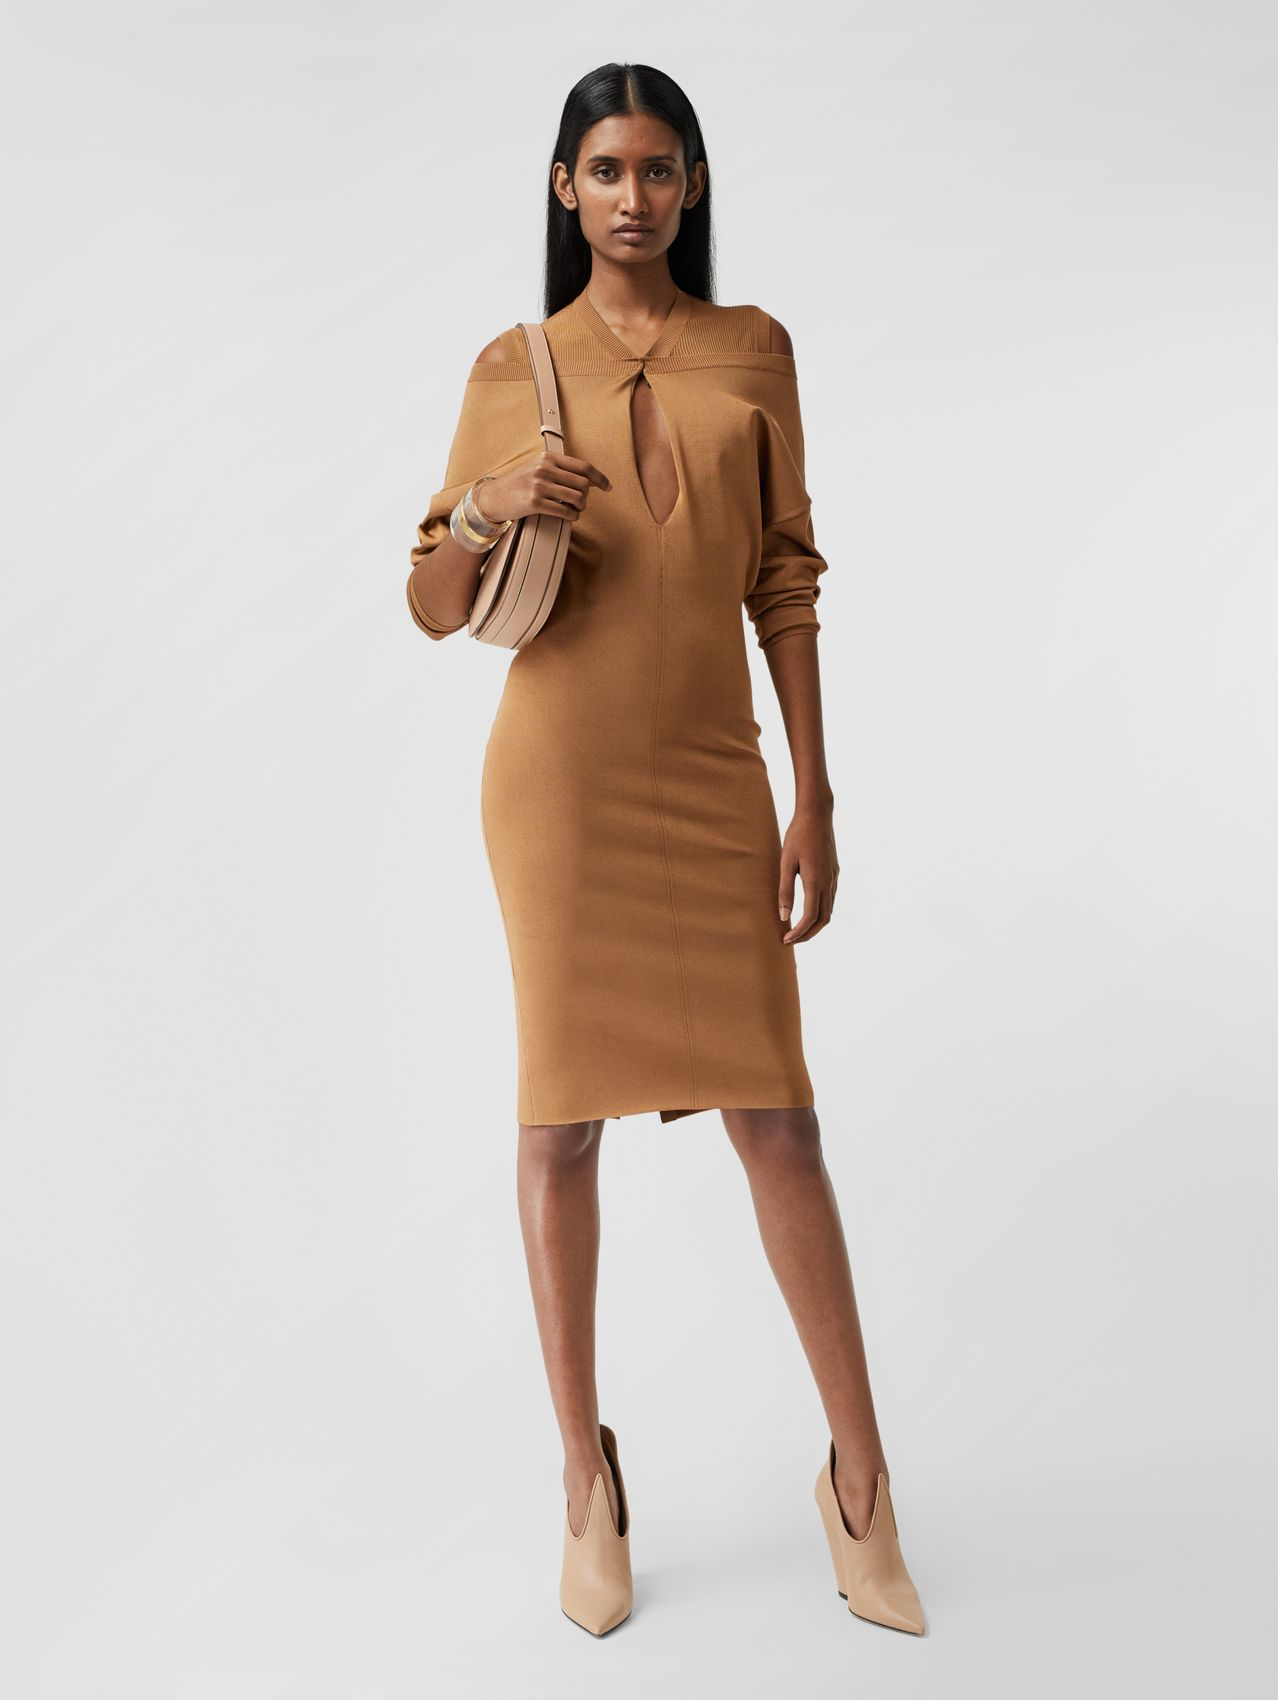 Long-sleeve Cut-out Detail Knitted Dress in Camel